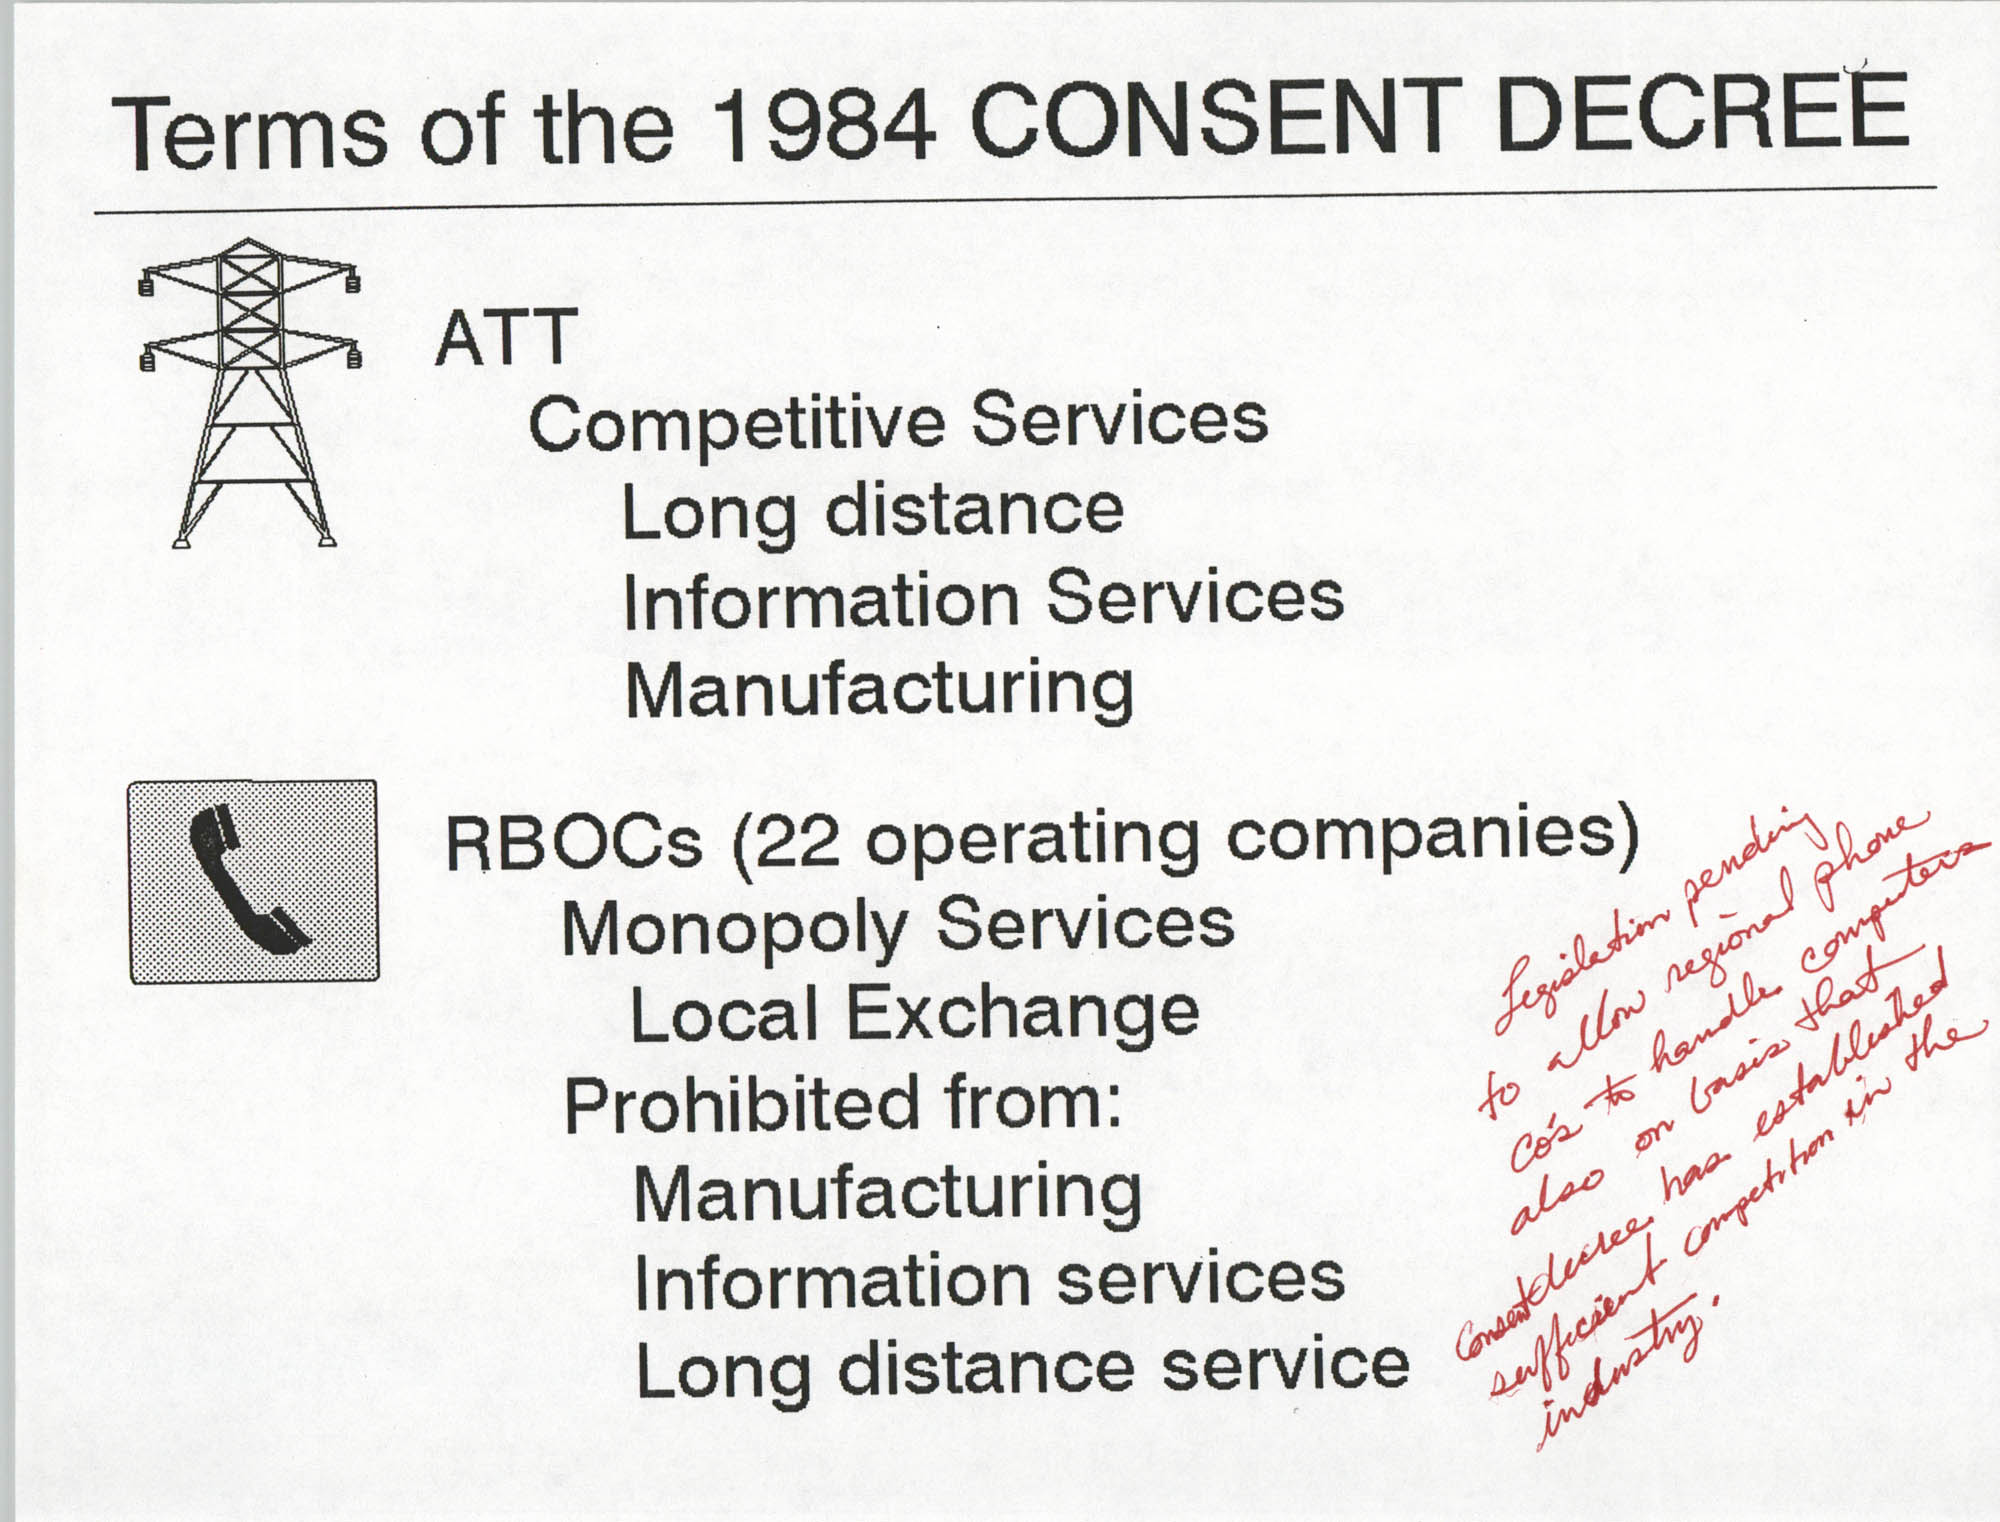 Developing an Agenda for the Information Superhighway, Anthony L. Pharr, May 20, 1994, Page 15